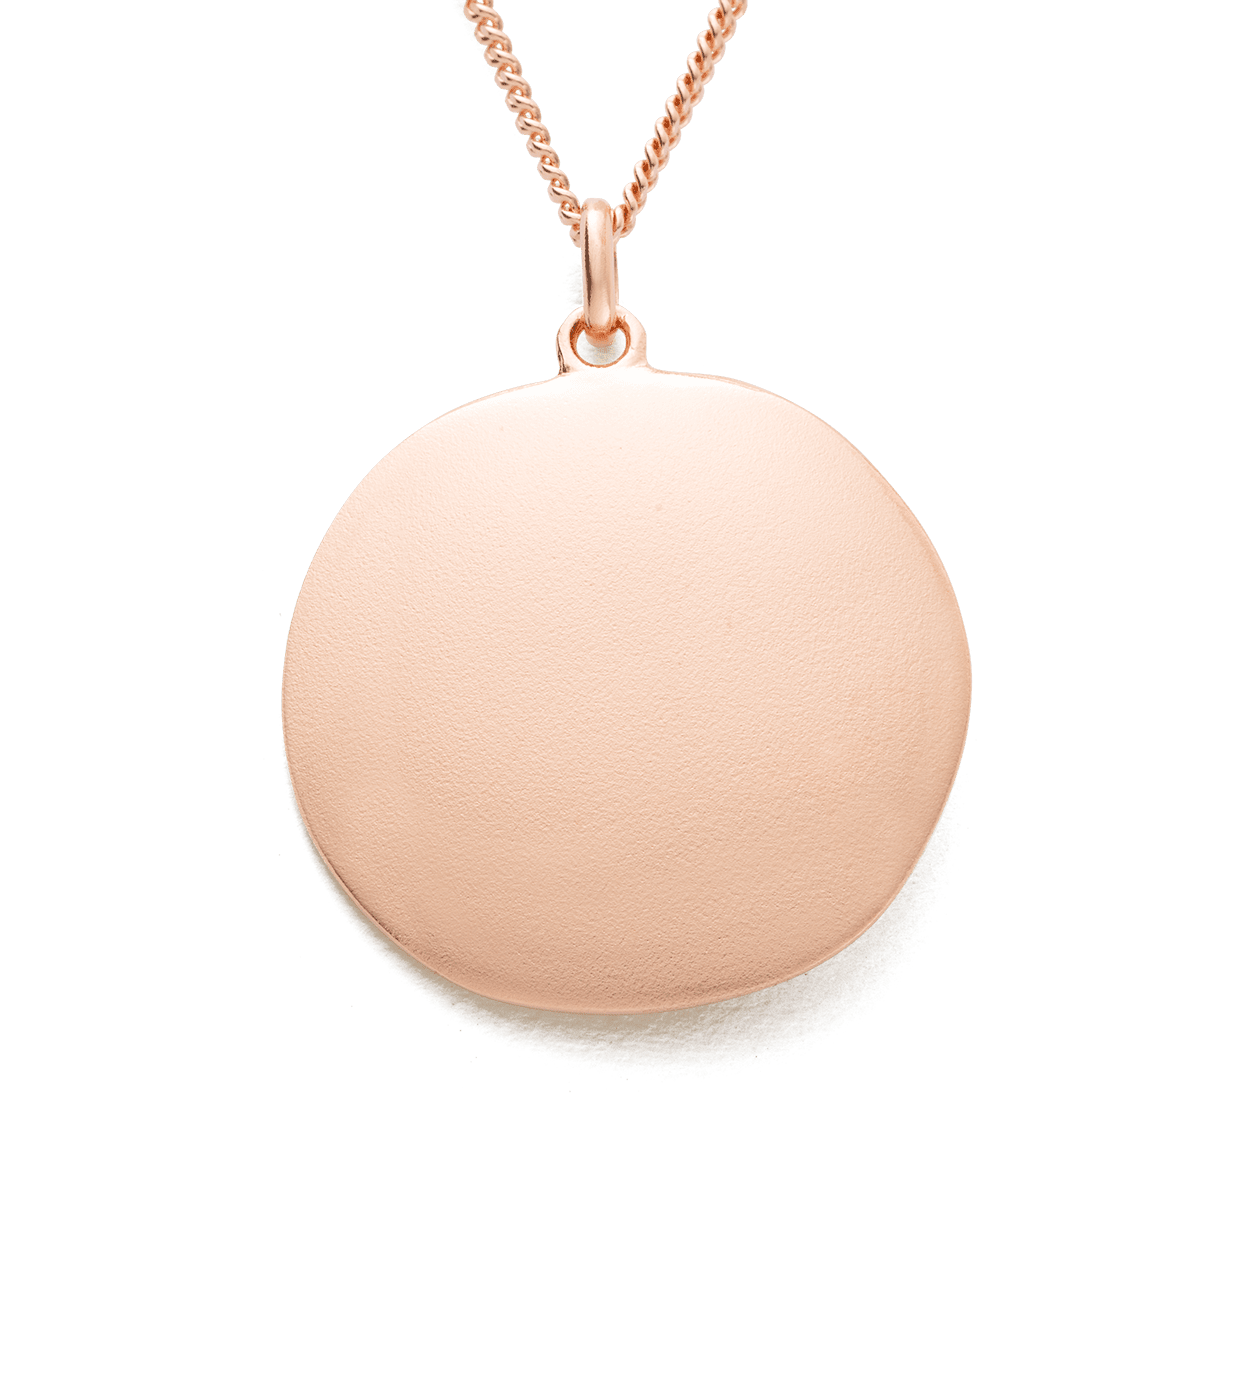 BY THE SEA COIN (18K ROSE GOLD VERMEIL)